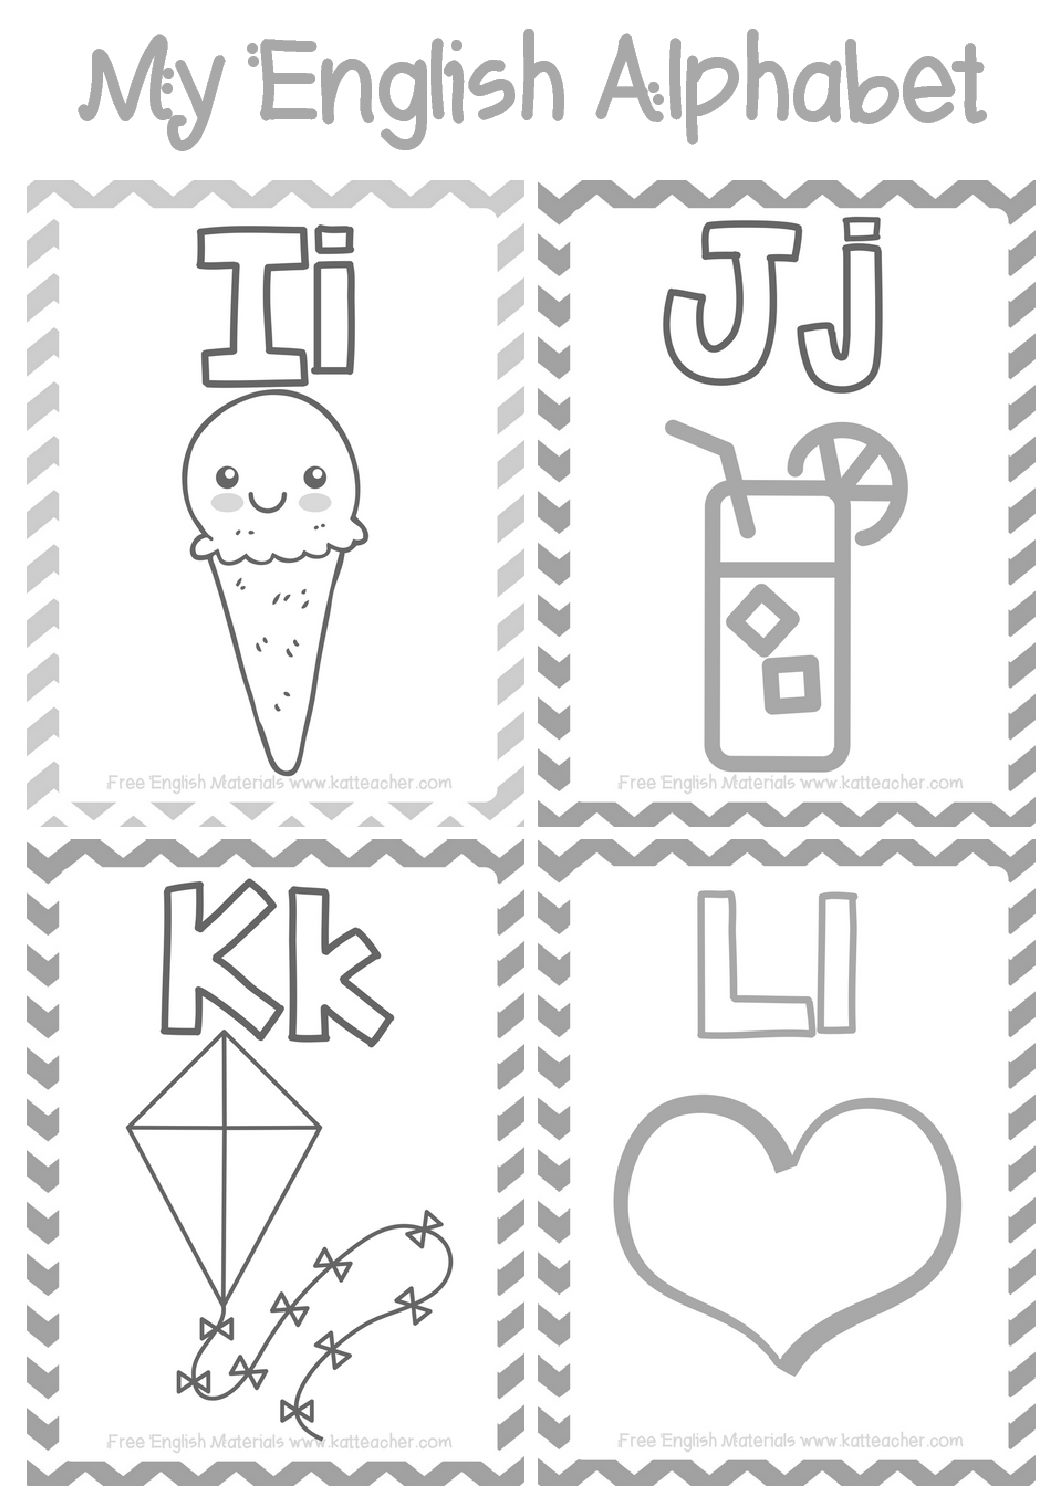 english alphabet coloring pages my english alphabet flashcards free coloring sheets and pages alphabet coloring english